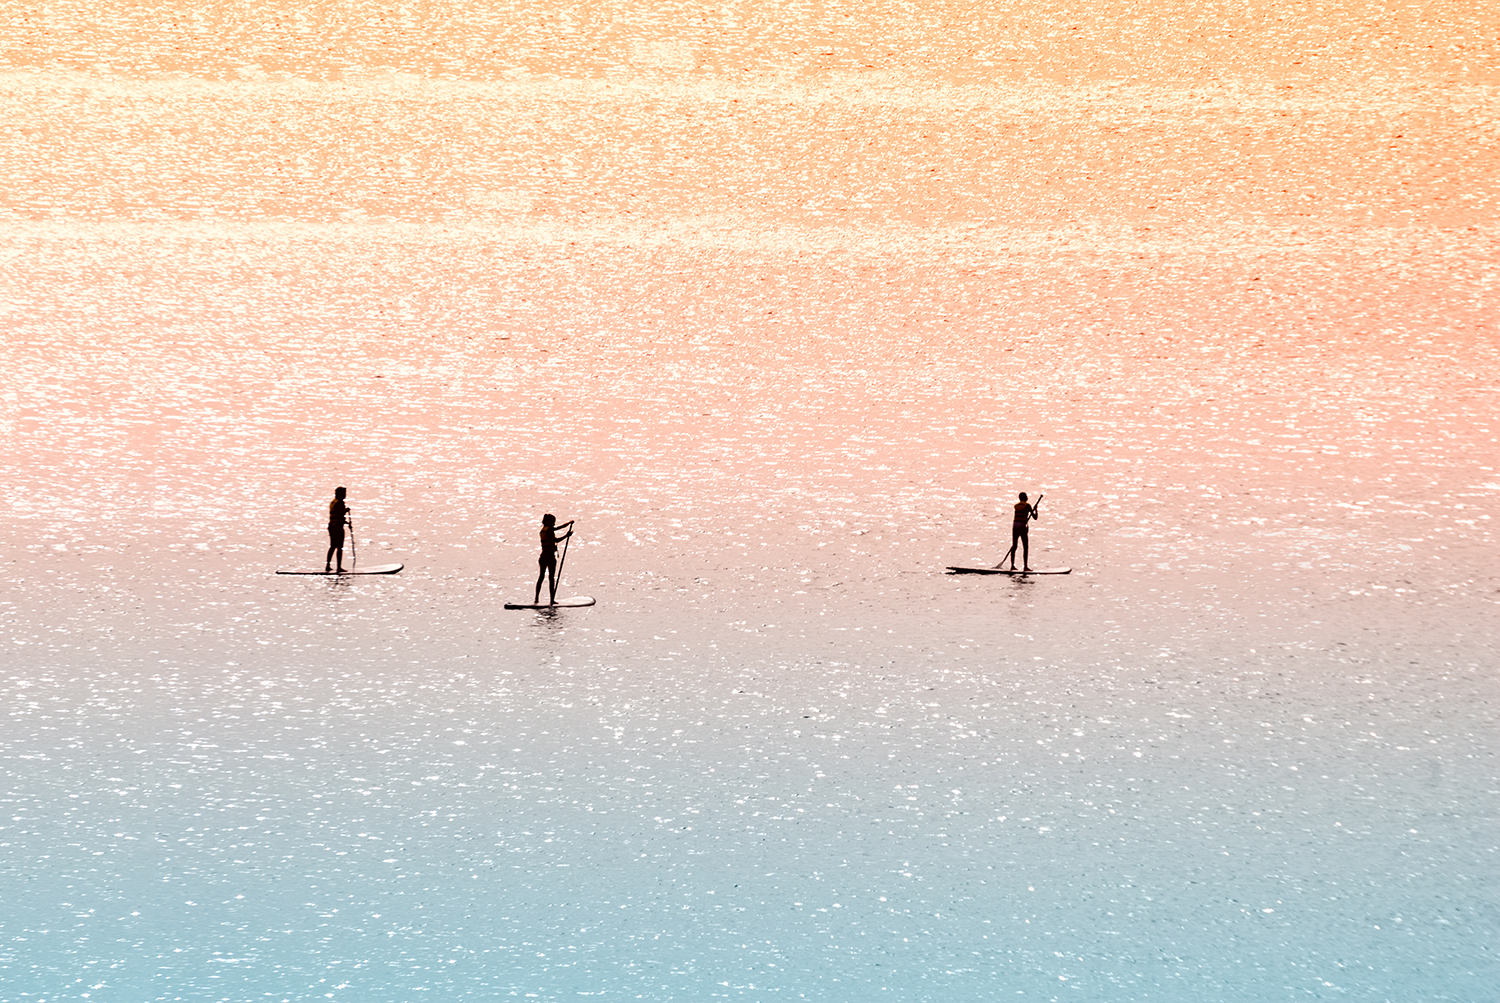 Standup paddle surfers example image 2